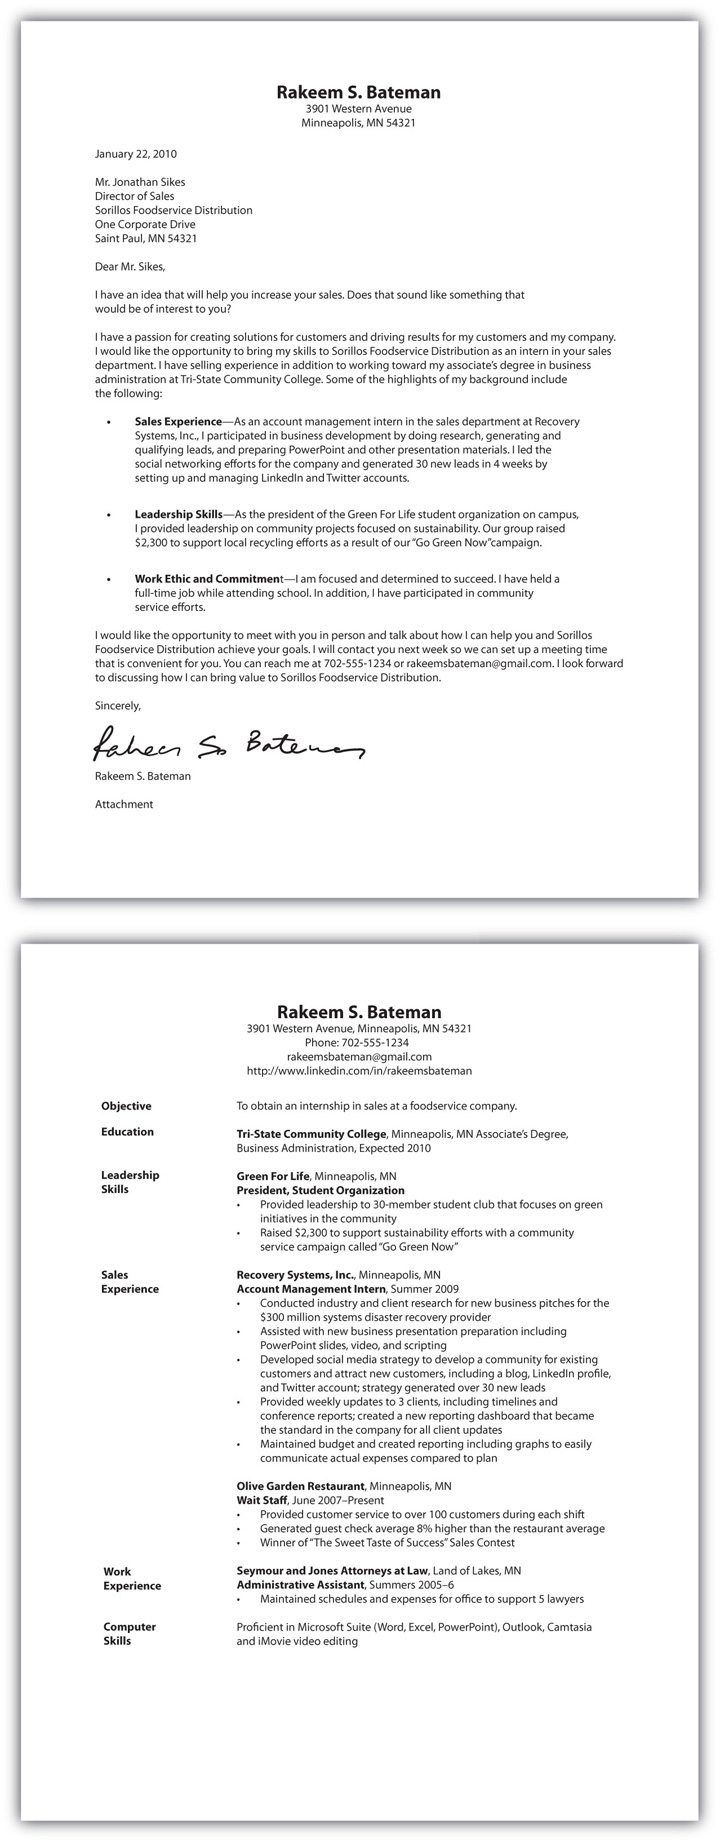 selling résumé and cover letter essentials best books for resume writing listing Resume Best Books For Resume And Cover Letter Writing